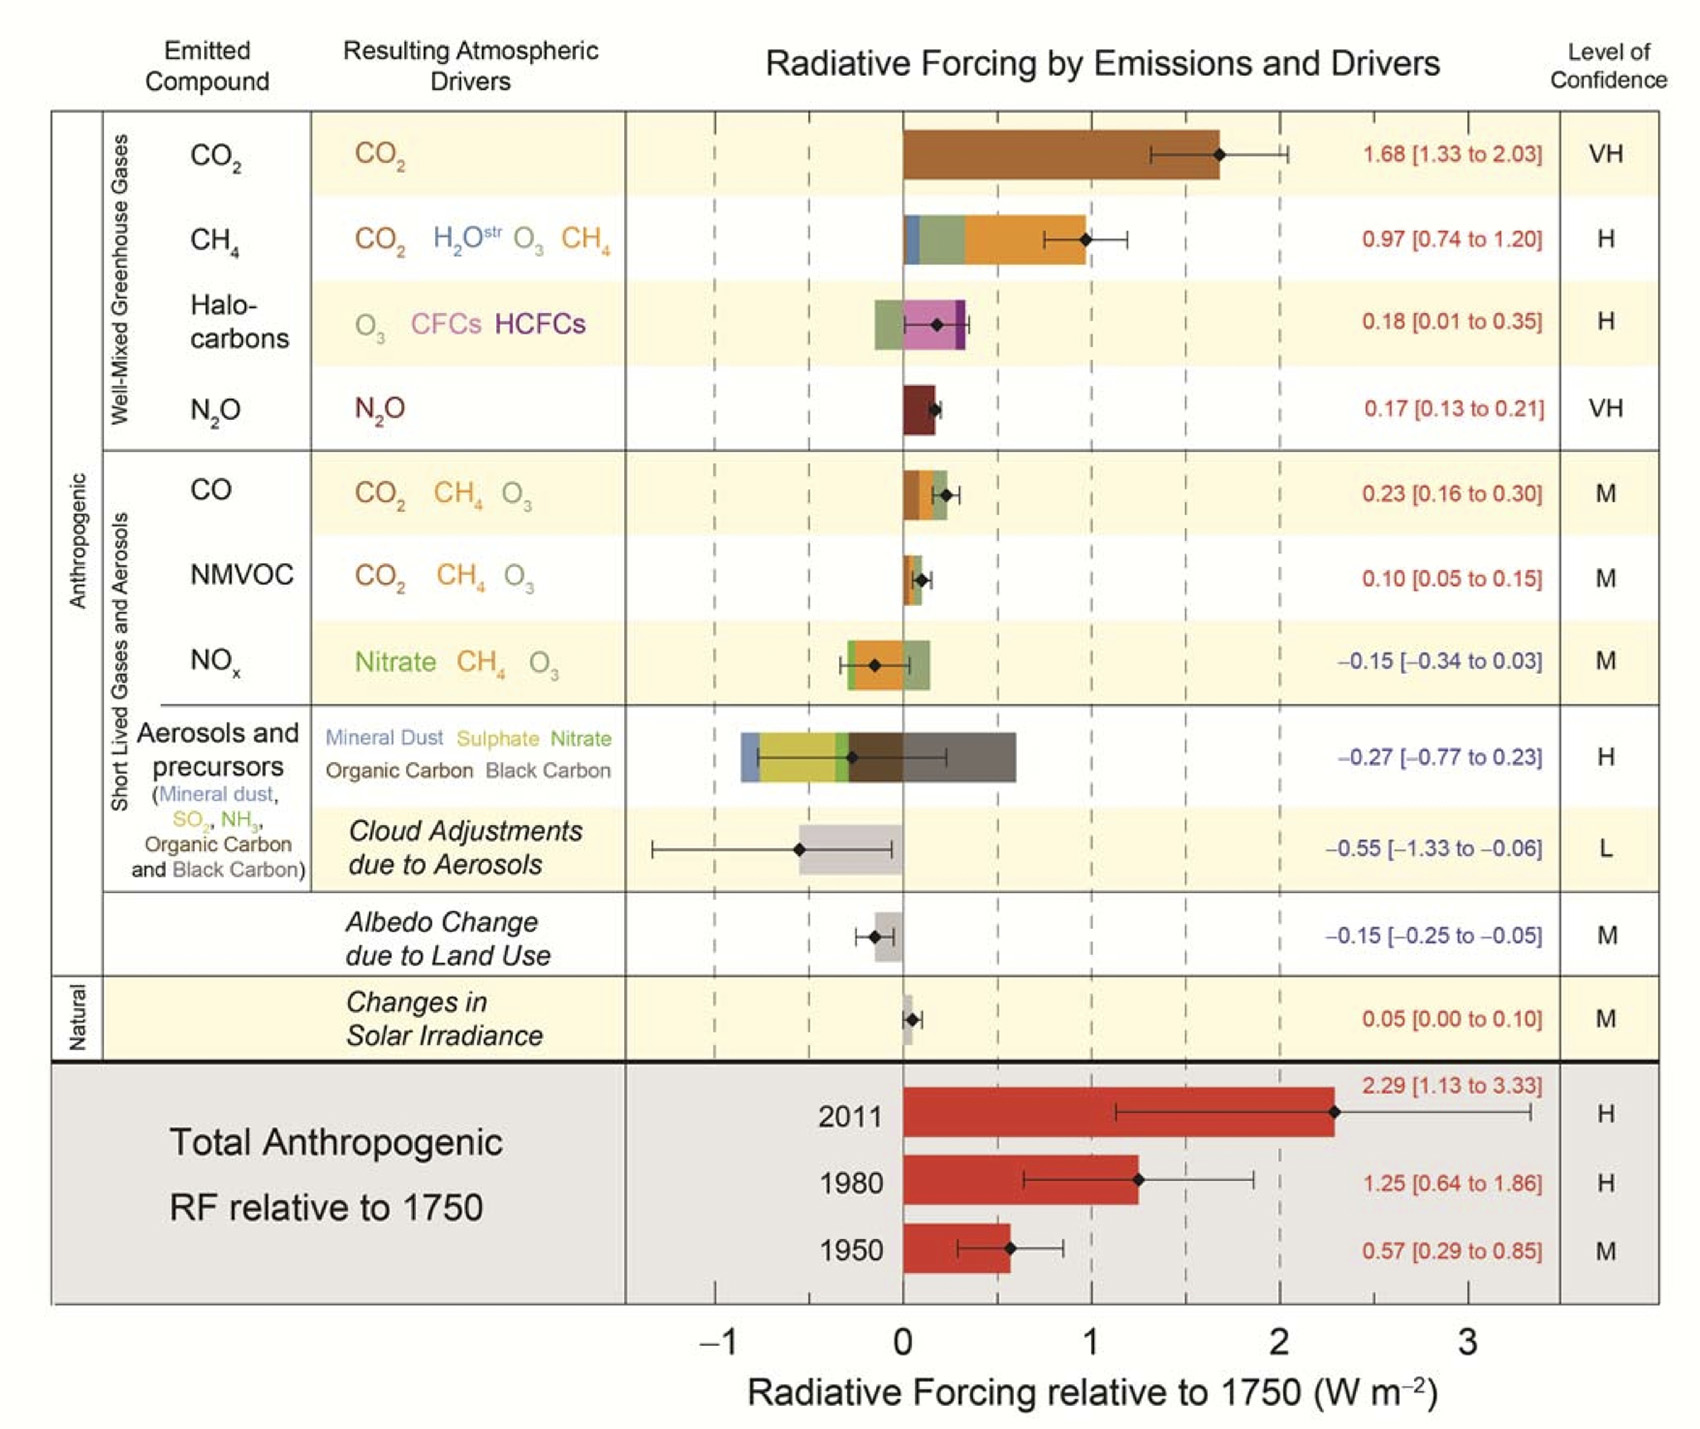 Radiative Forcing by Emissions and Drivers Infographic